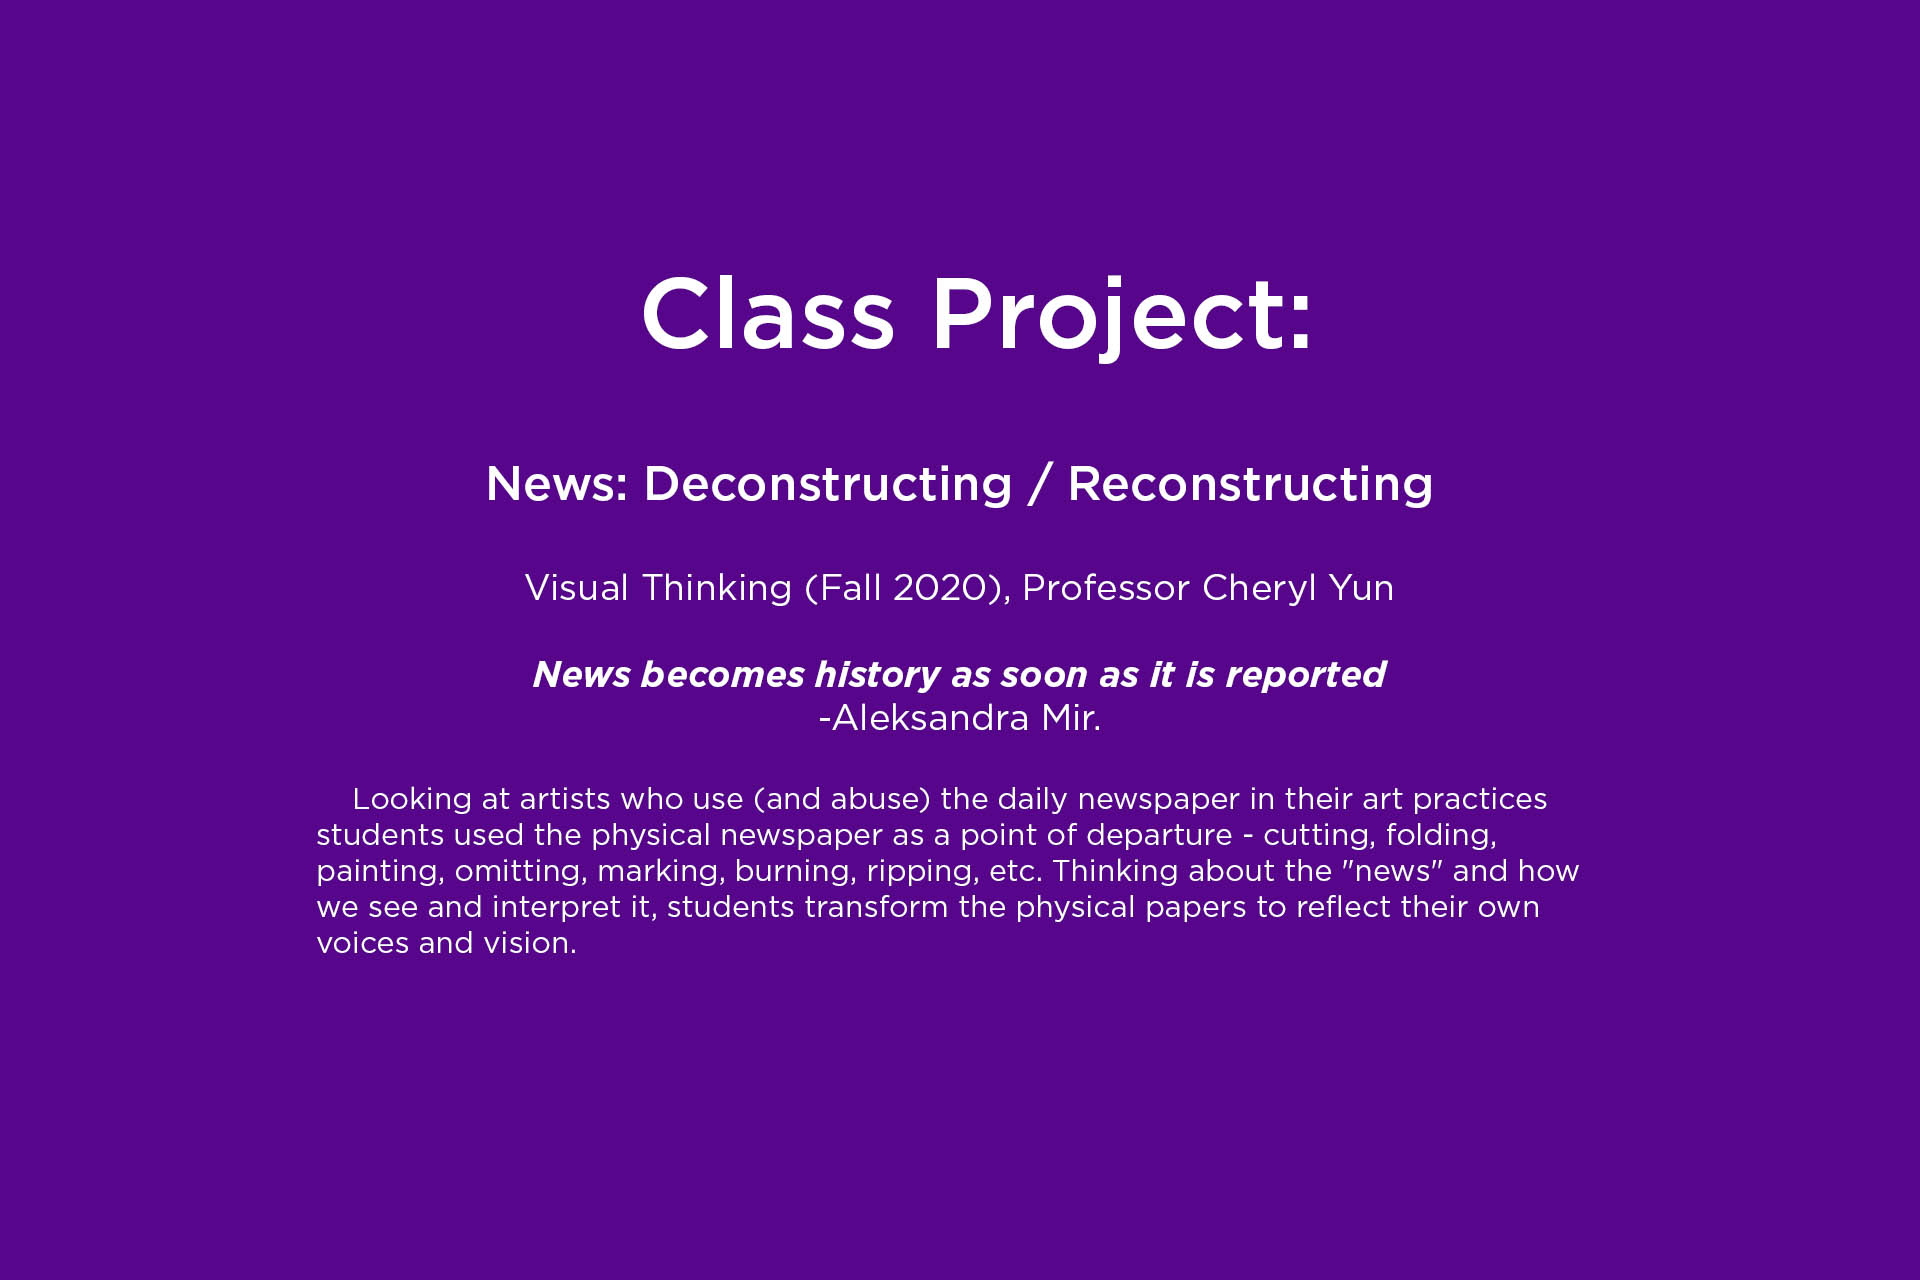 "class project, News: Deconstructing / Reconstructing  Visual Thinking (Fall 2020), Professor Cheryl Yun   News becomes history as soon as it is reported  -Aleksandra Mir.  	Looking at artists who use (and abuse) the daily newspaper in their art practices students used the physical newspaper as a point of departure - cutting, folding, painting, omitting, marking, burning, ripping, etc. Thinking about the ""news"" and how we see and interpret it, students transform the physical papers to reflect their own voices and vision."